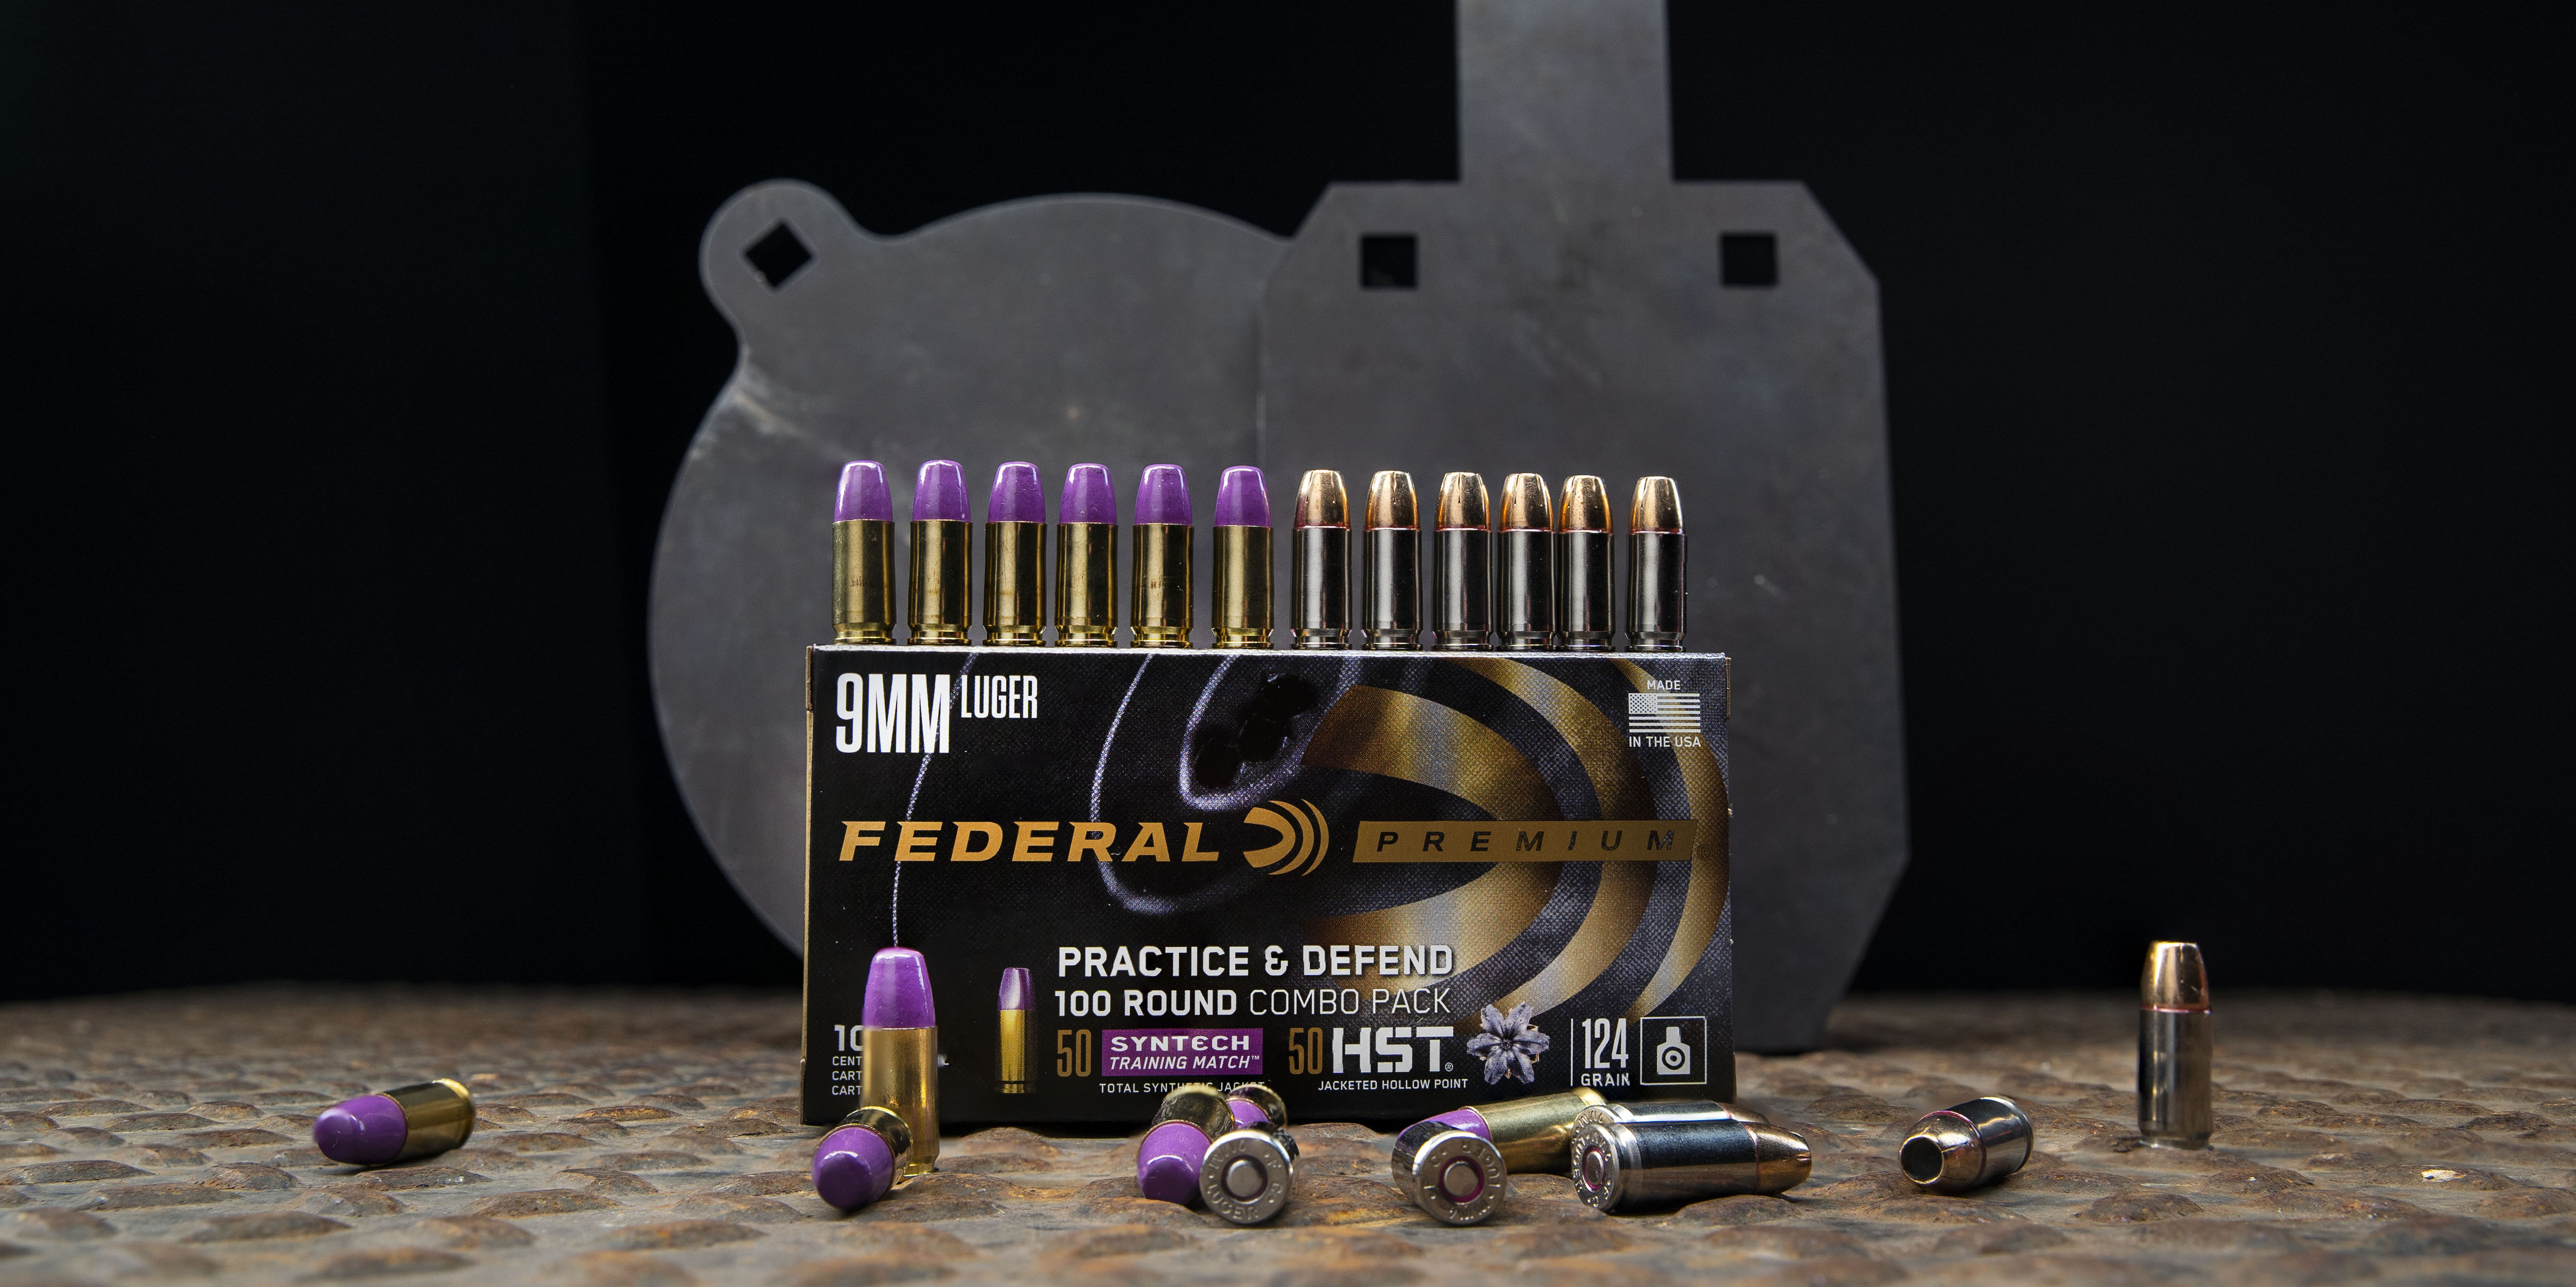 NEW Practice & Defend Packs Debuted from Federal Premium Ammunition